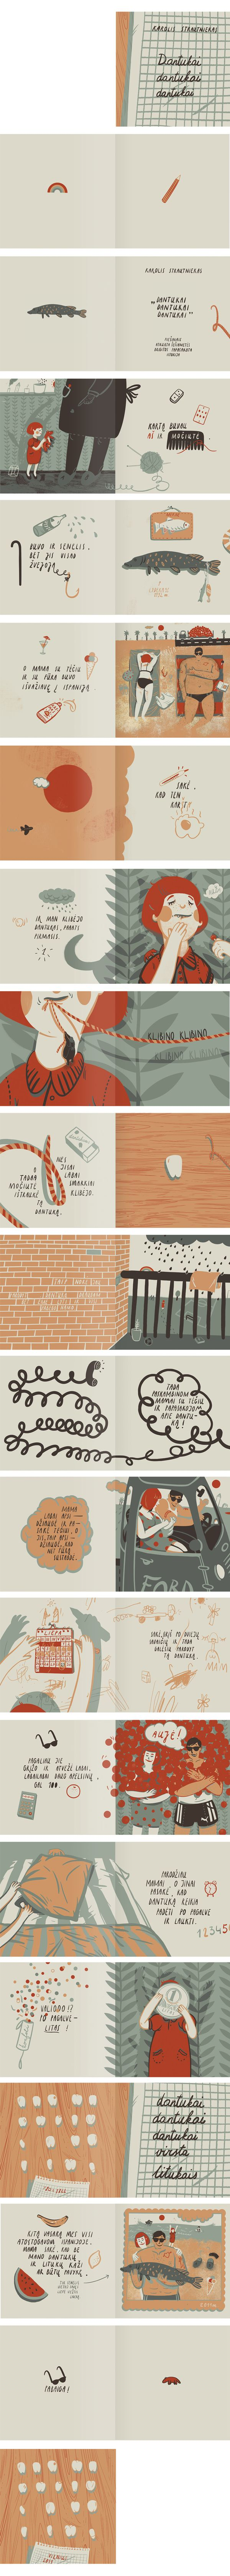 Something about the illustration style here with handmade type. A picture book by Karolis Strautniekas, via Behance